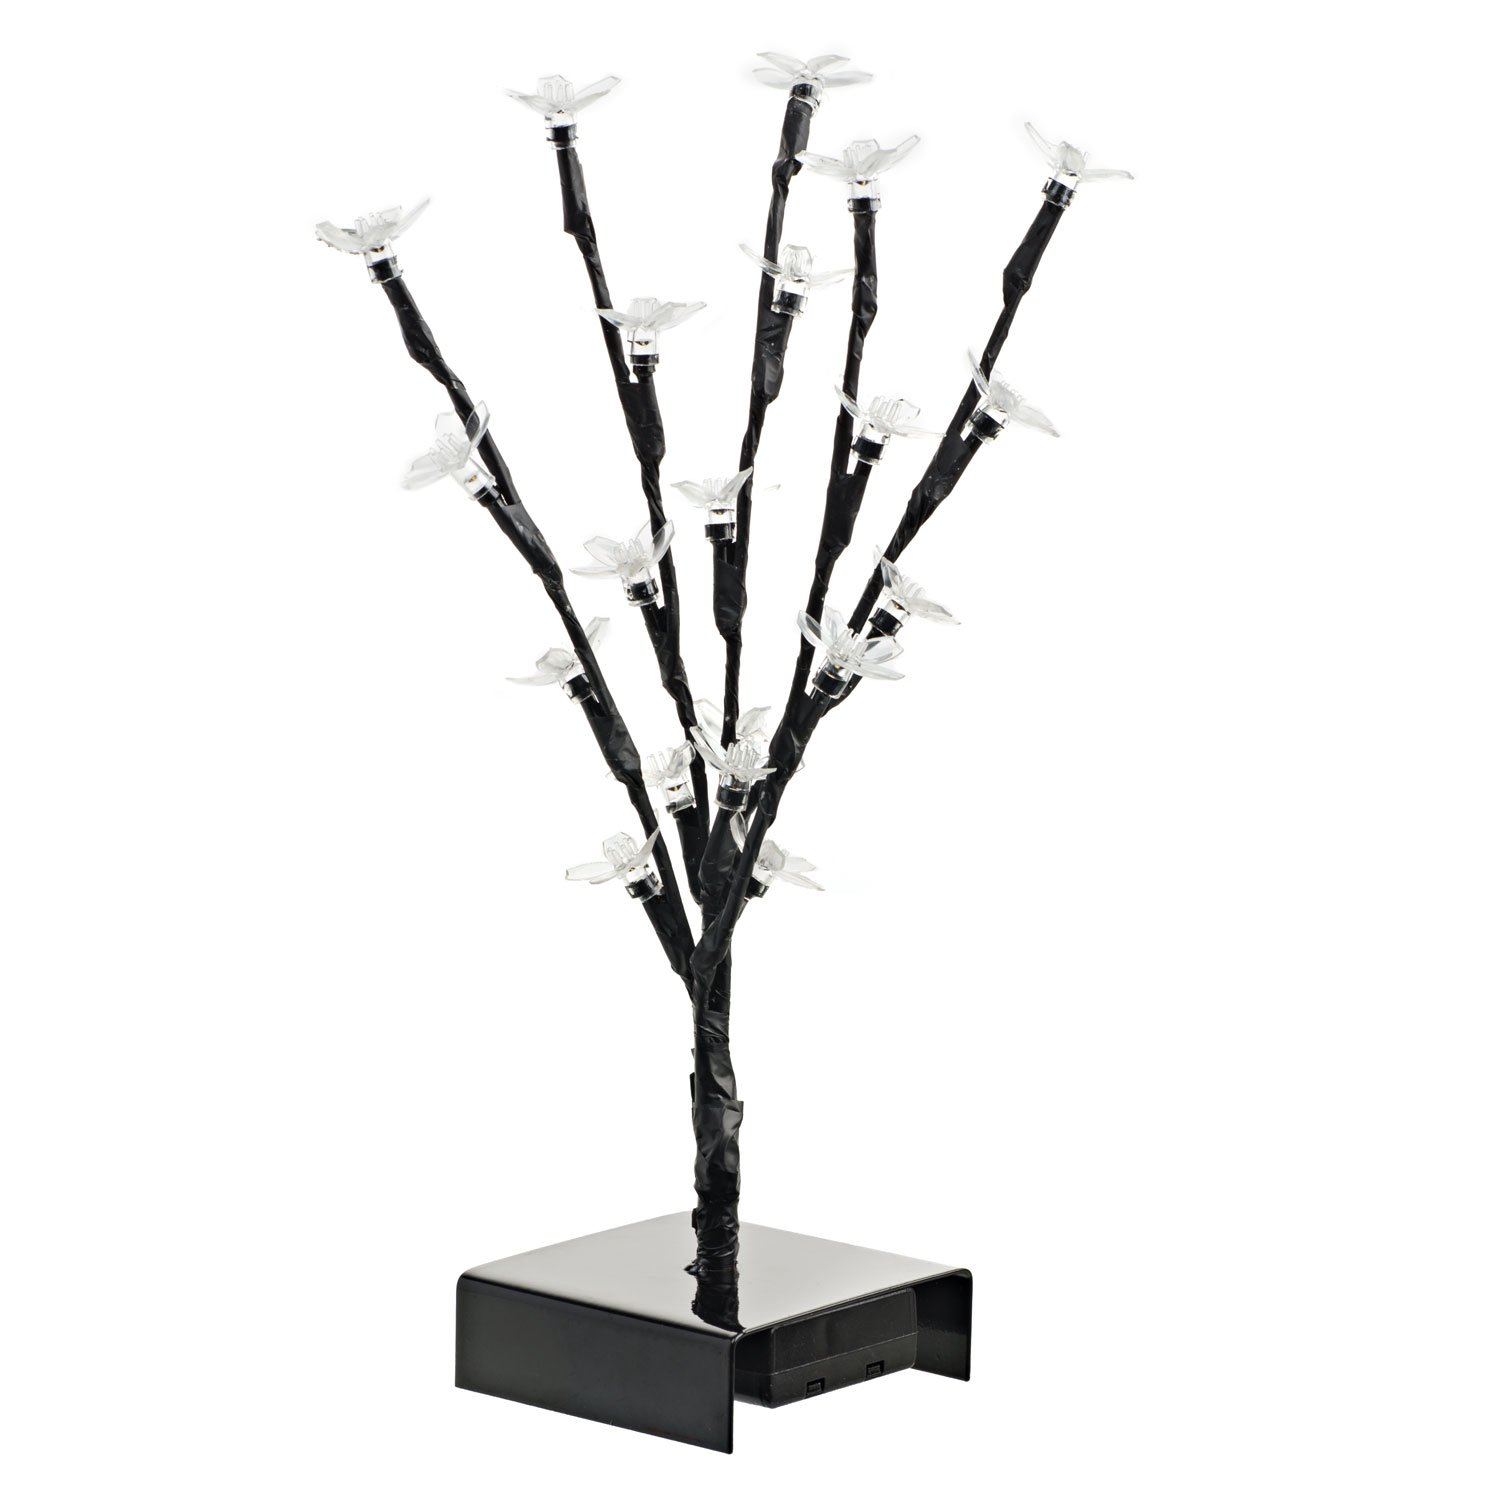 Ideas In Life 12 Inch LED Cherry Blossom Tree - Lighted Artificial Trees for Home Decor Office Desk Decorations Battery Operated Table Top Portable Fake Lit Blossoms. No Cords or Outlets Needed